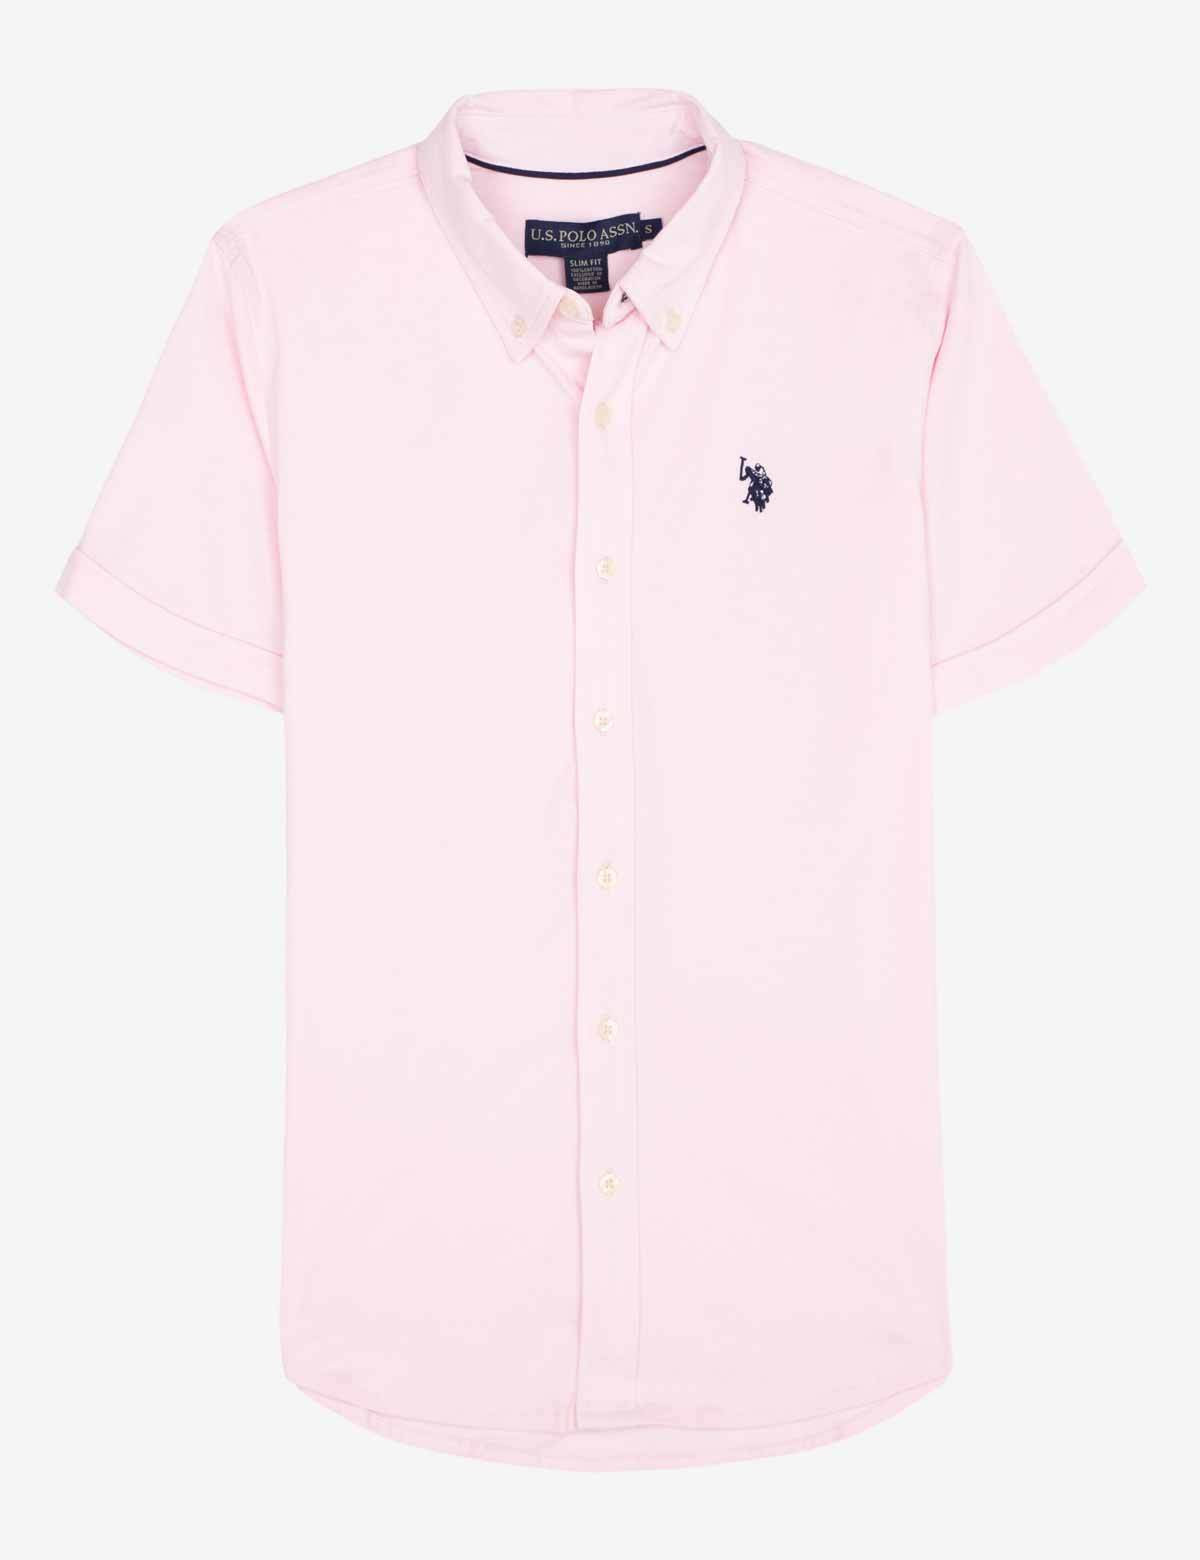 SOLID BUTTON UP JERSEY SHIRT by US Polo, available on uspoloassn.com for $24 Gigi Hadid Top SIMILAR PRODUCT